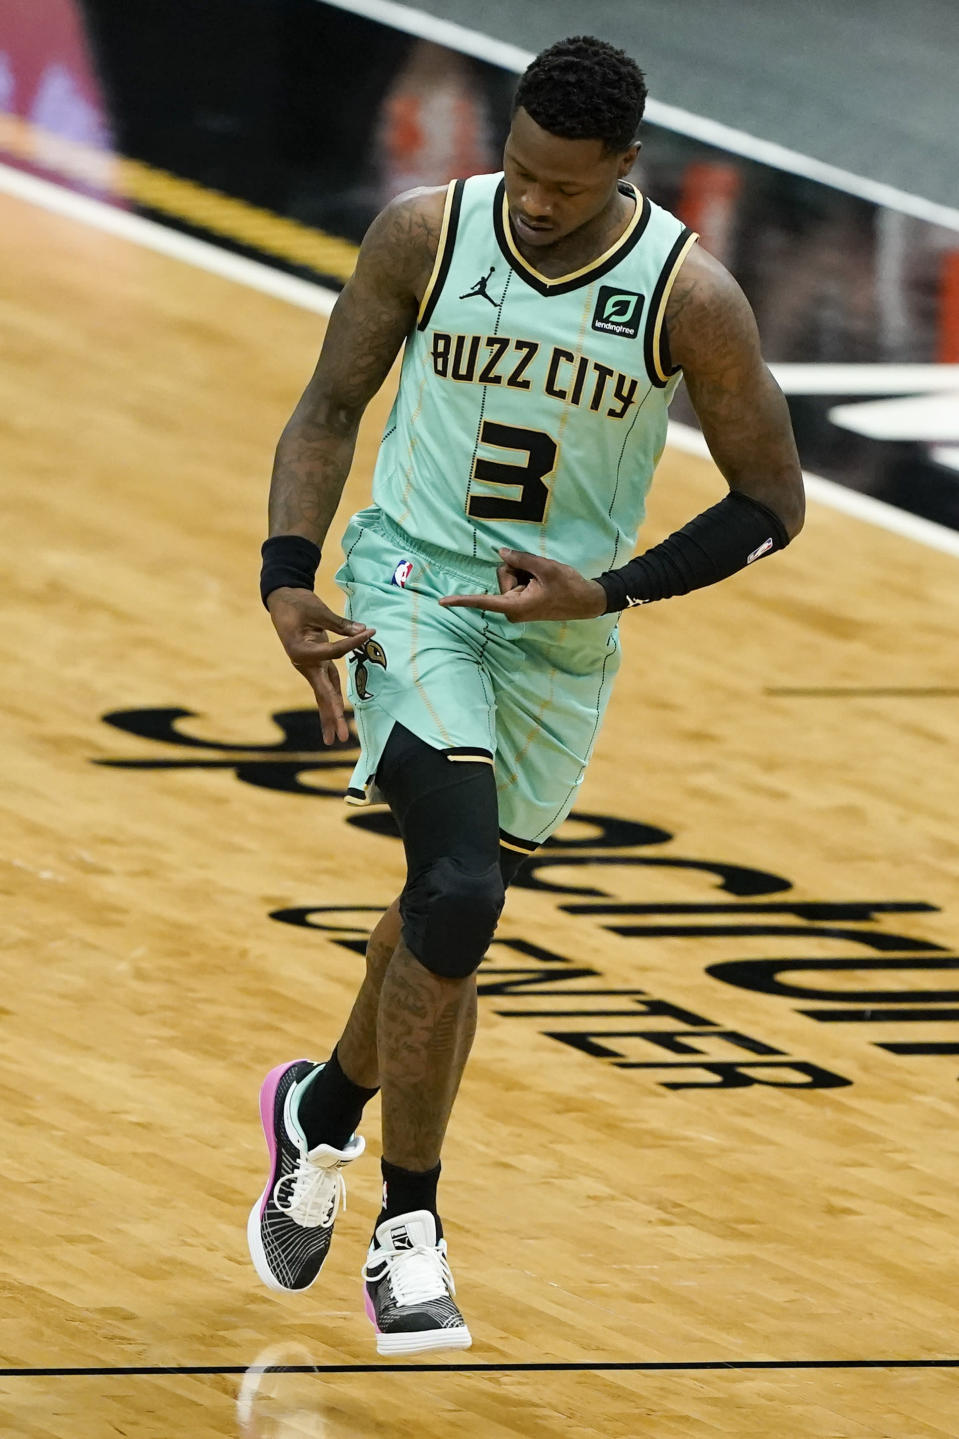 Charlotte Hornets guard Terry Rozier celebrates after scoring against the Denver Nuggets during the first half of an NBA basketball game on Tuesday, May 11, 2021, in Charlotte, N.C. (AP Photo/Chris Carlson)